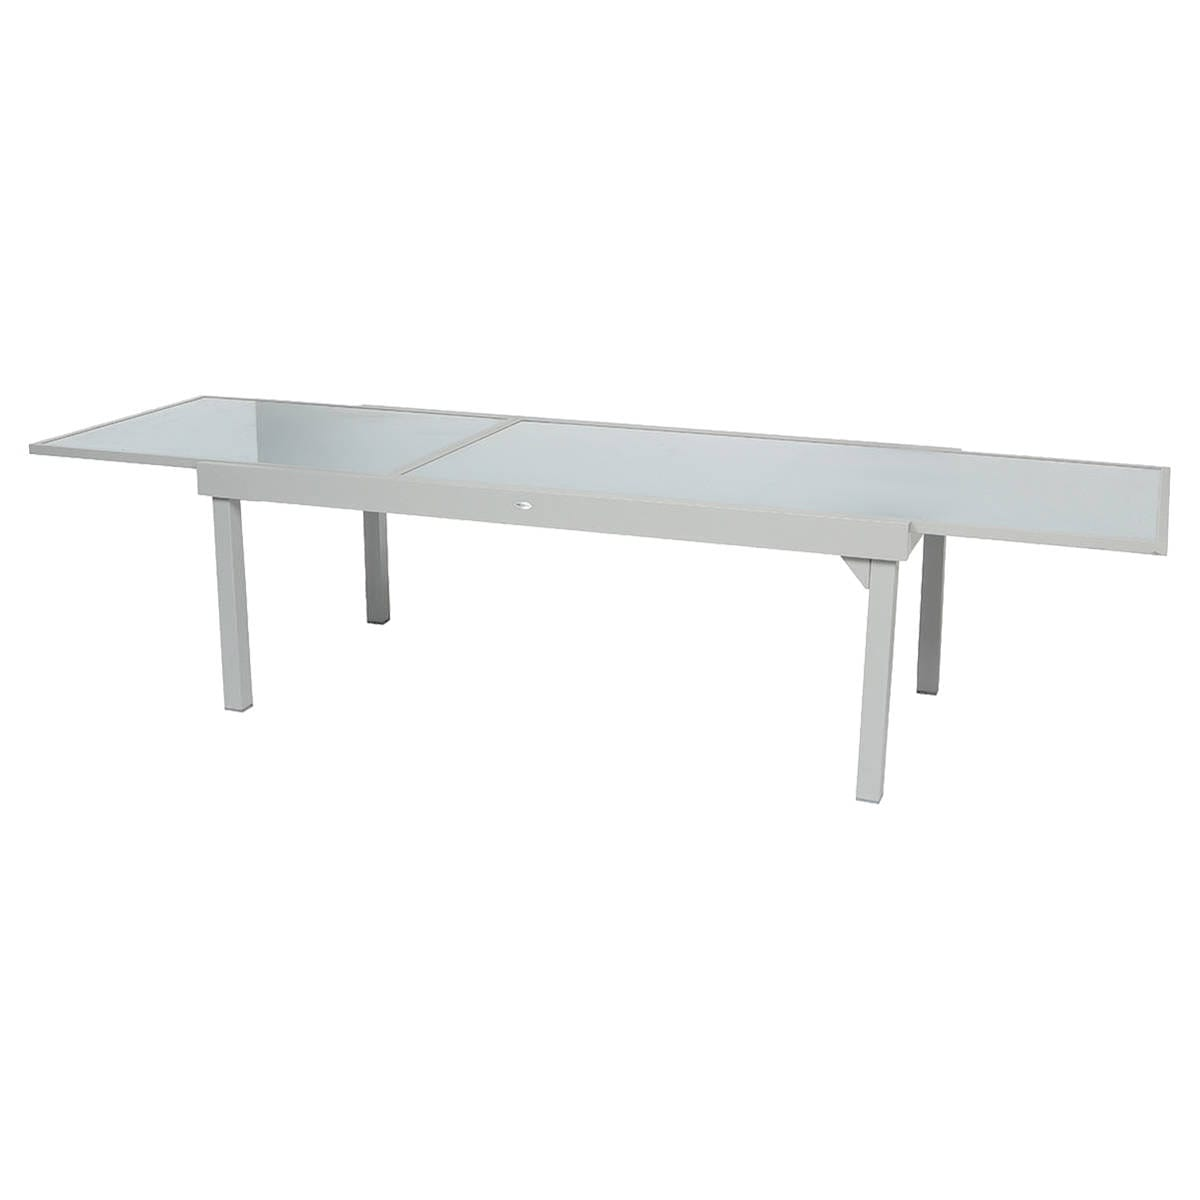 Table de jardin extensible piazza gris silver mat for Table exterieur 10 personnes